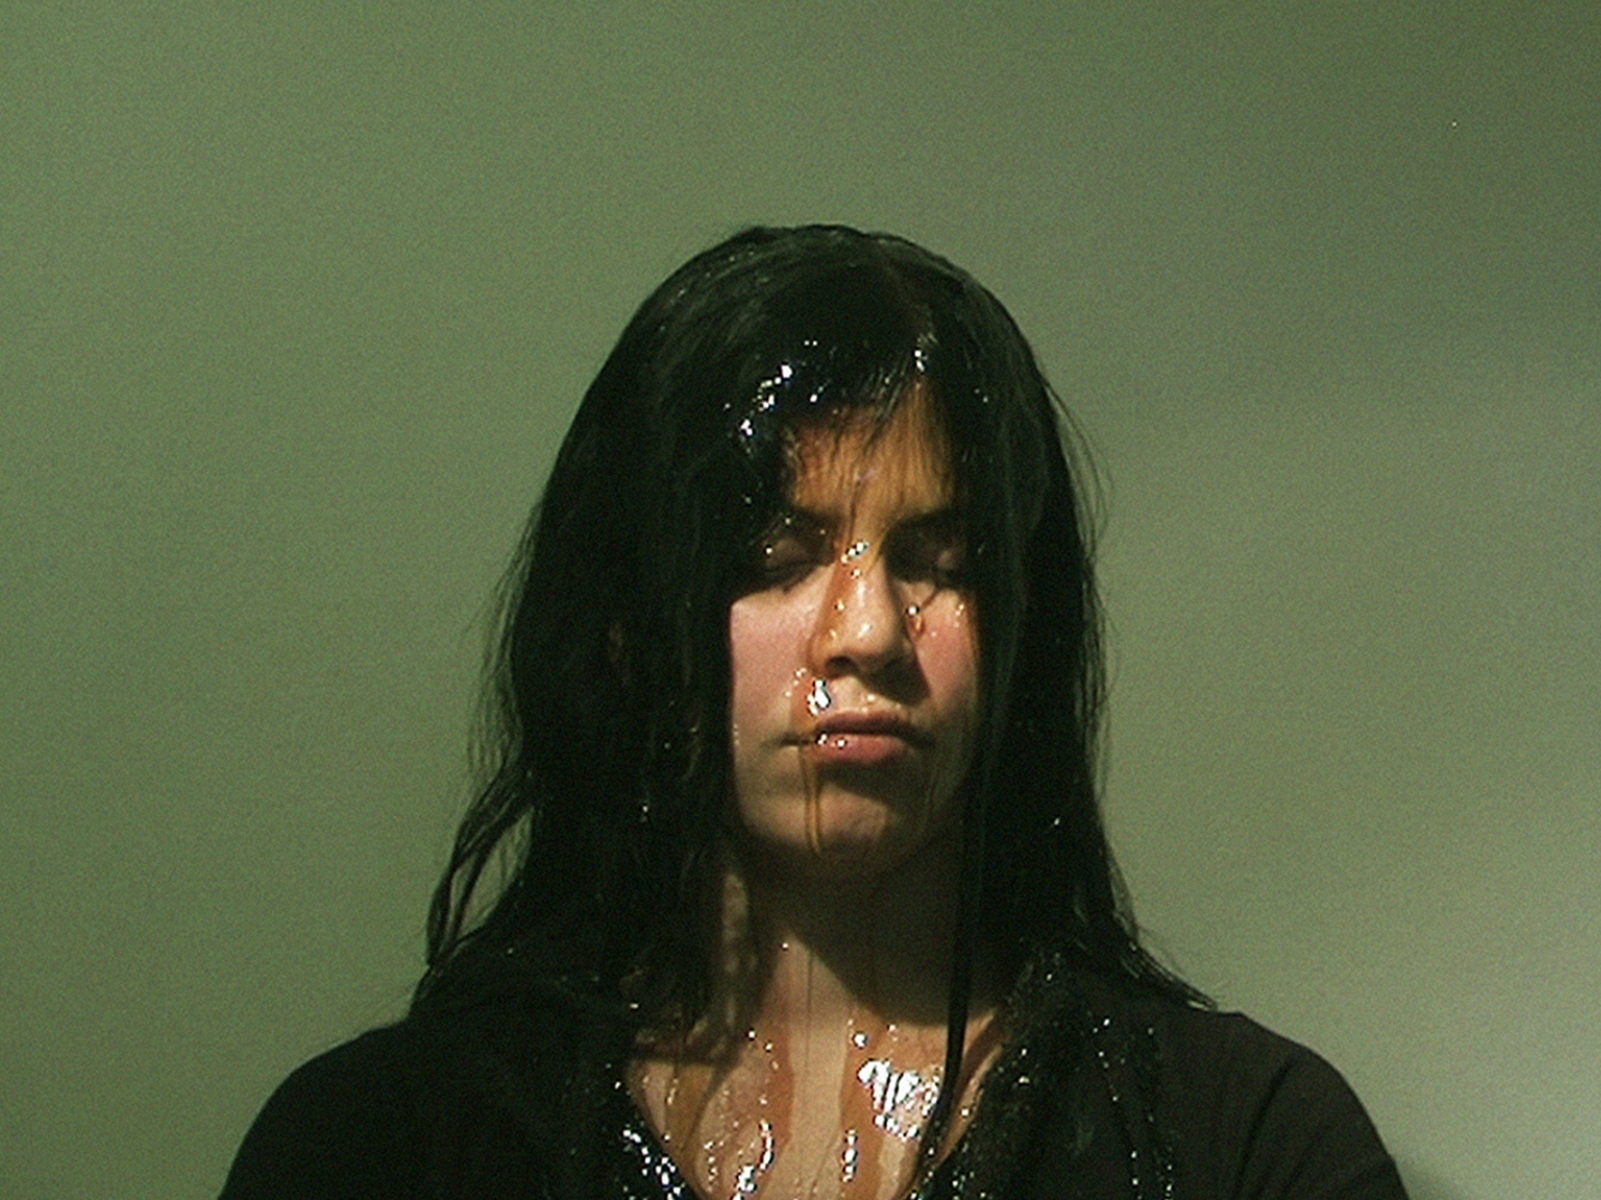 8. A drop of honey, 2013 - Performance, Video Still (Naivy Perez)